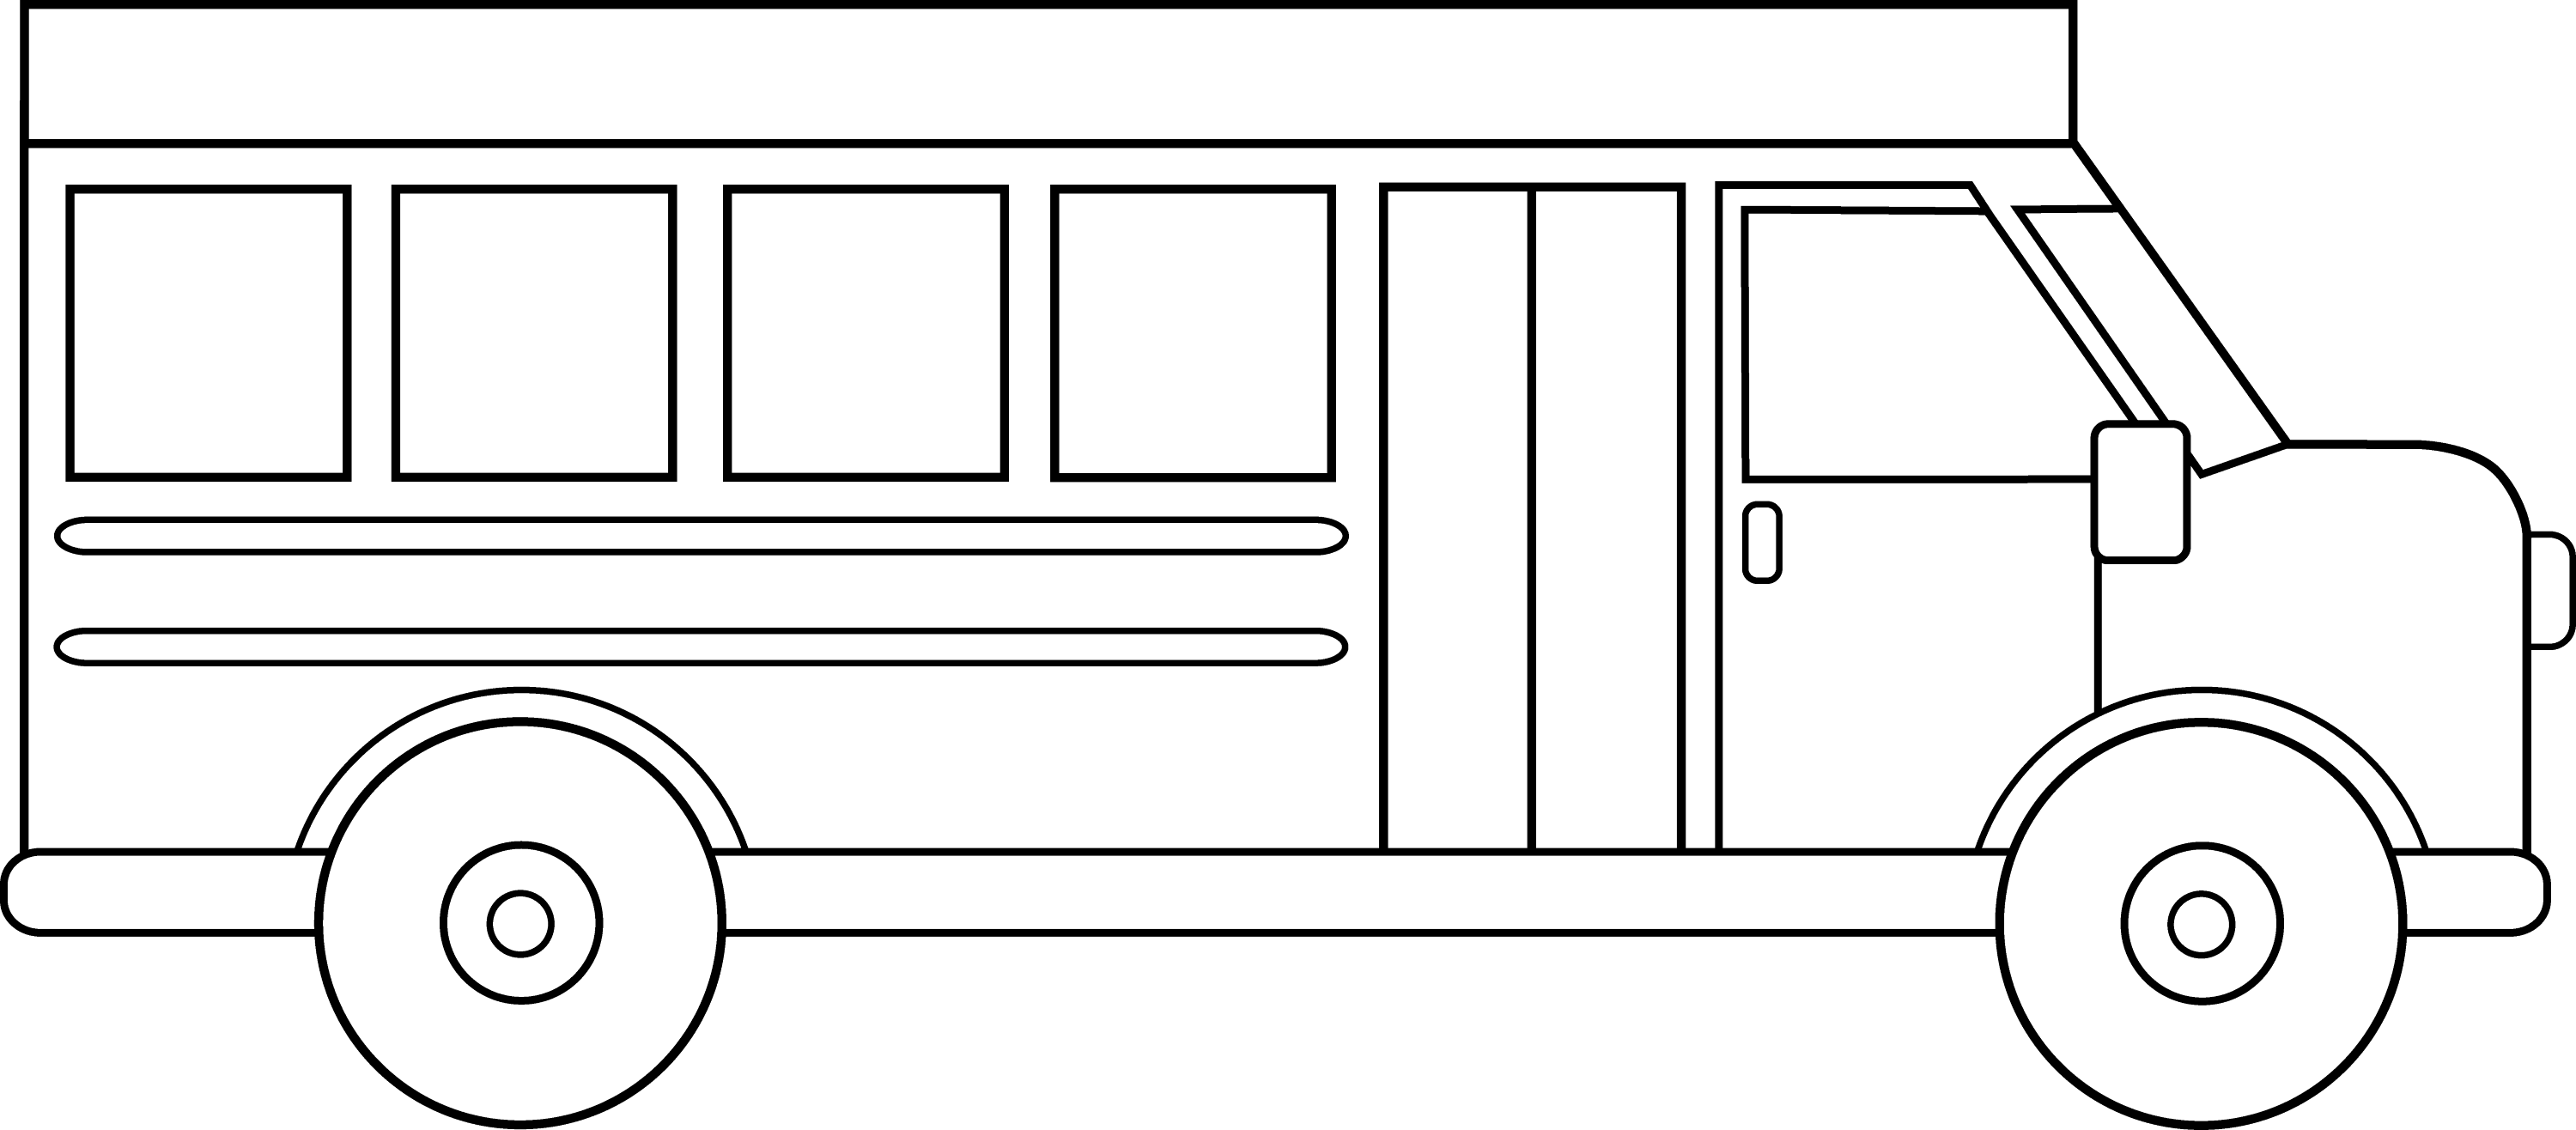 drawing of a bus school bus line drawing at getdrawings free download drawing of a bus